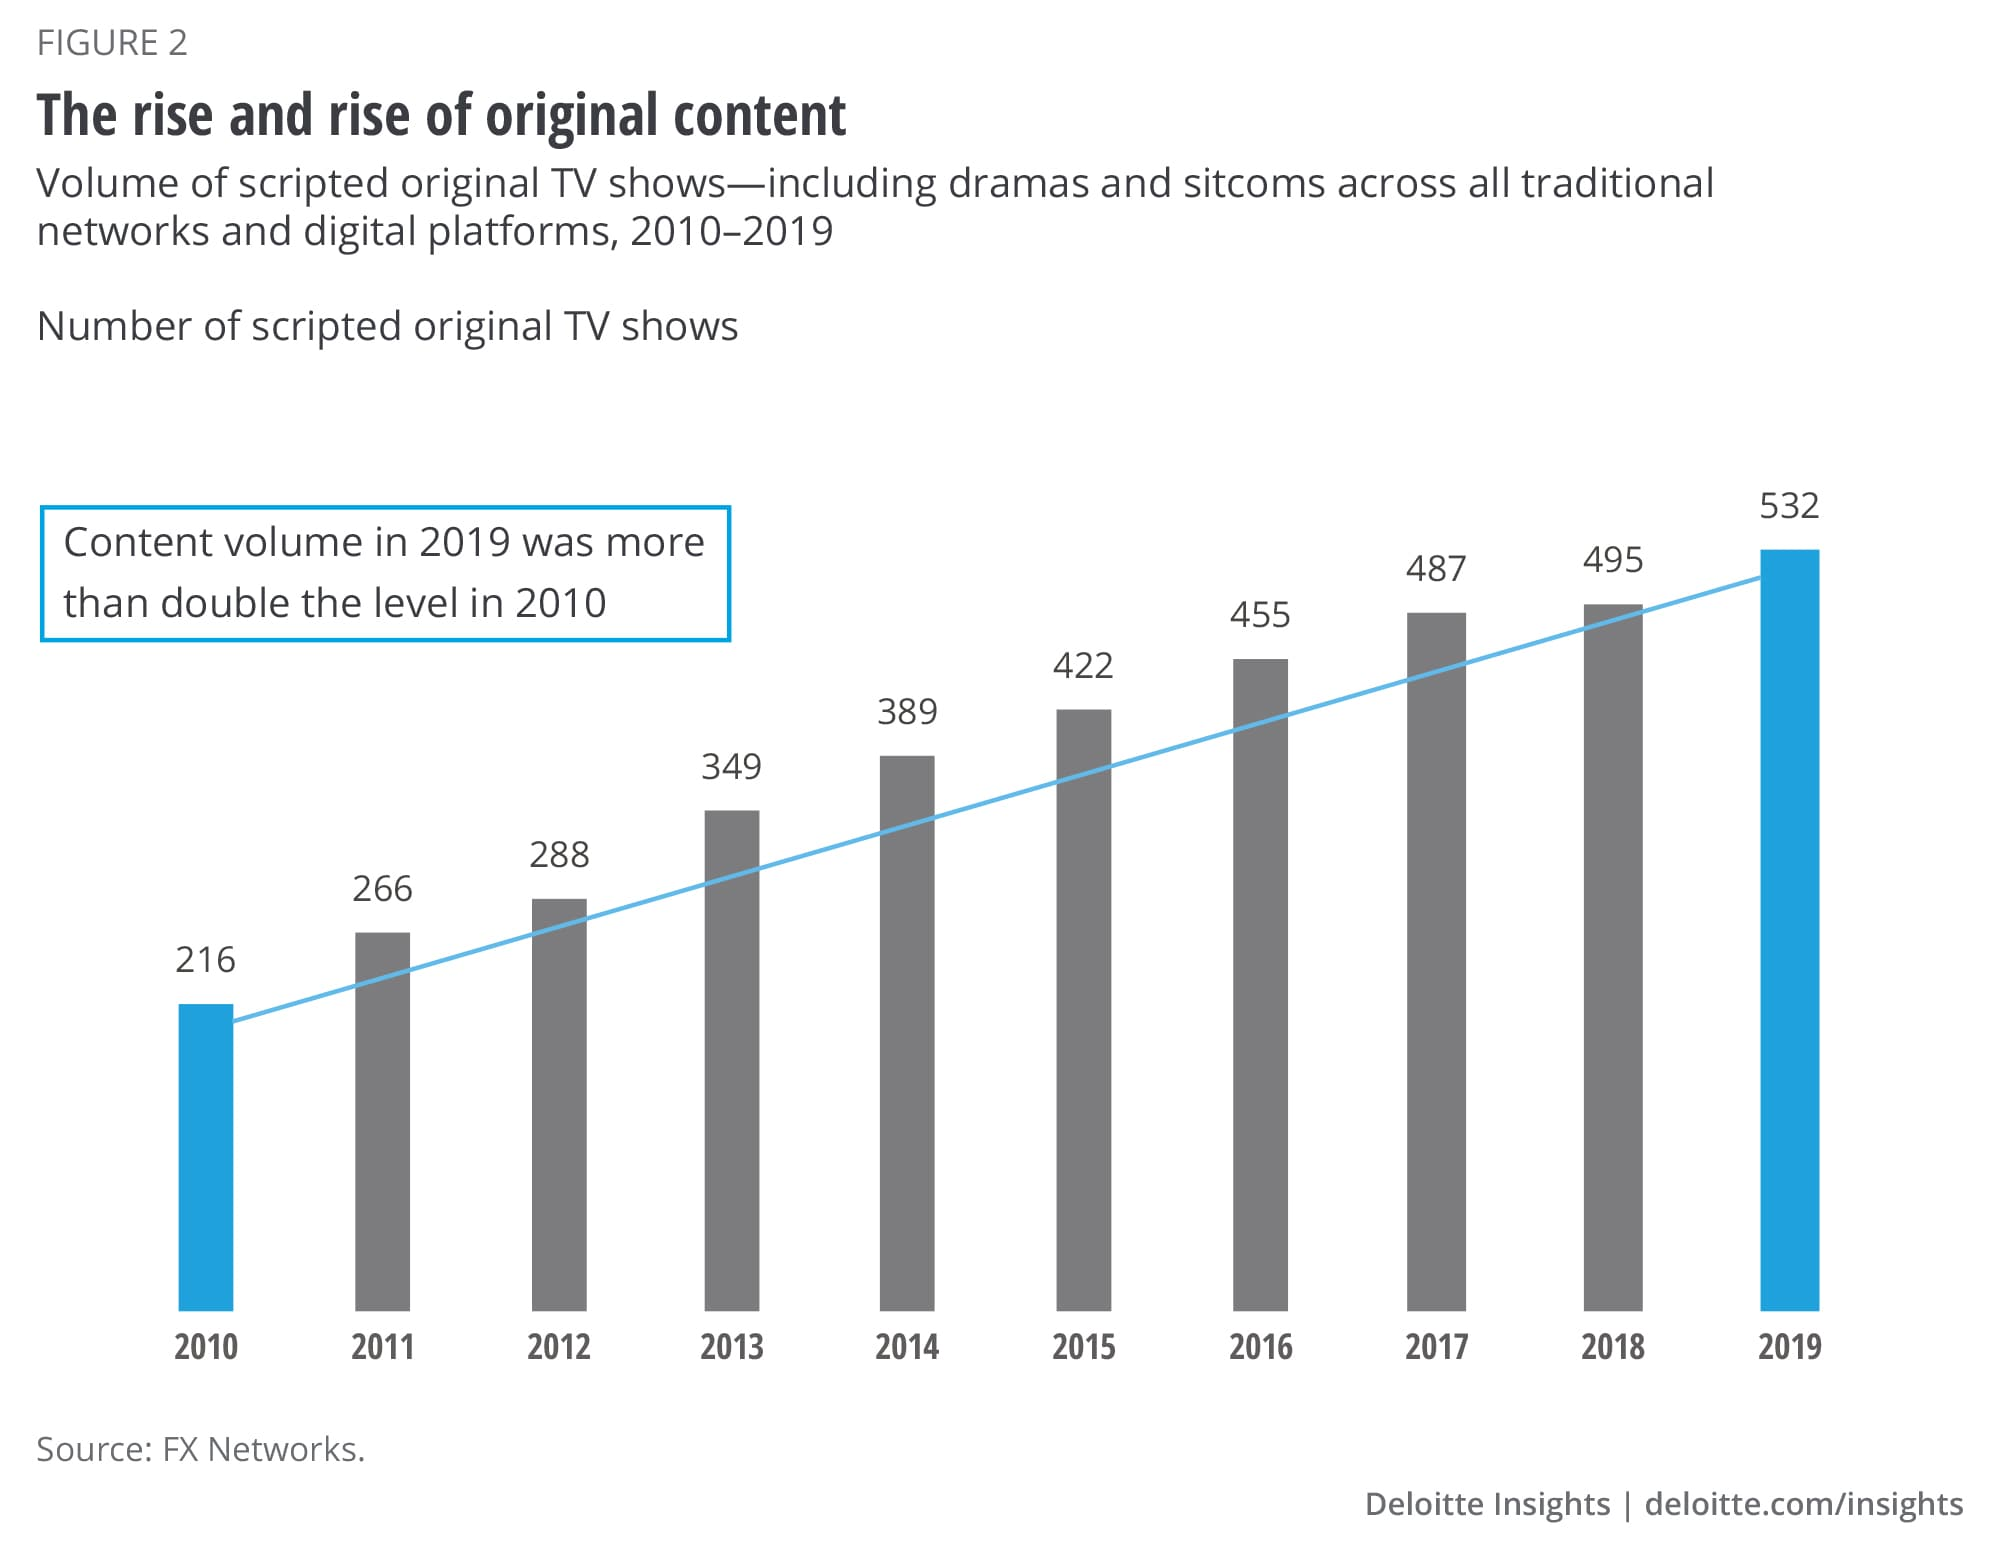 The rise and rise of original content